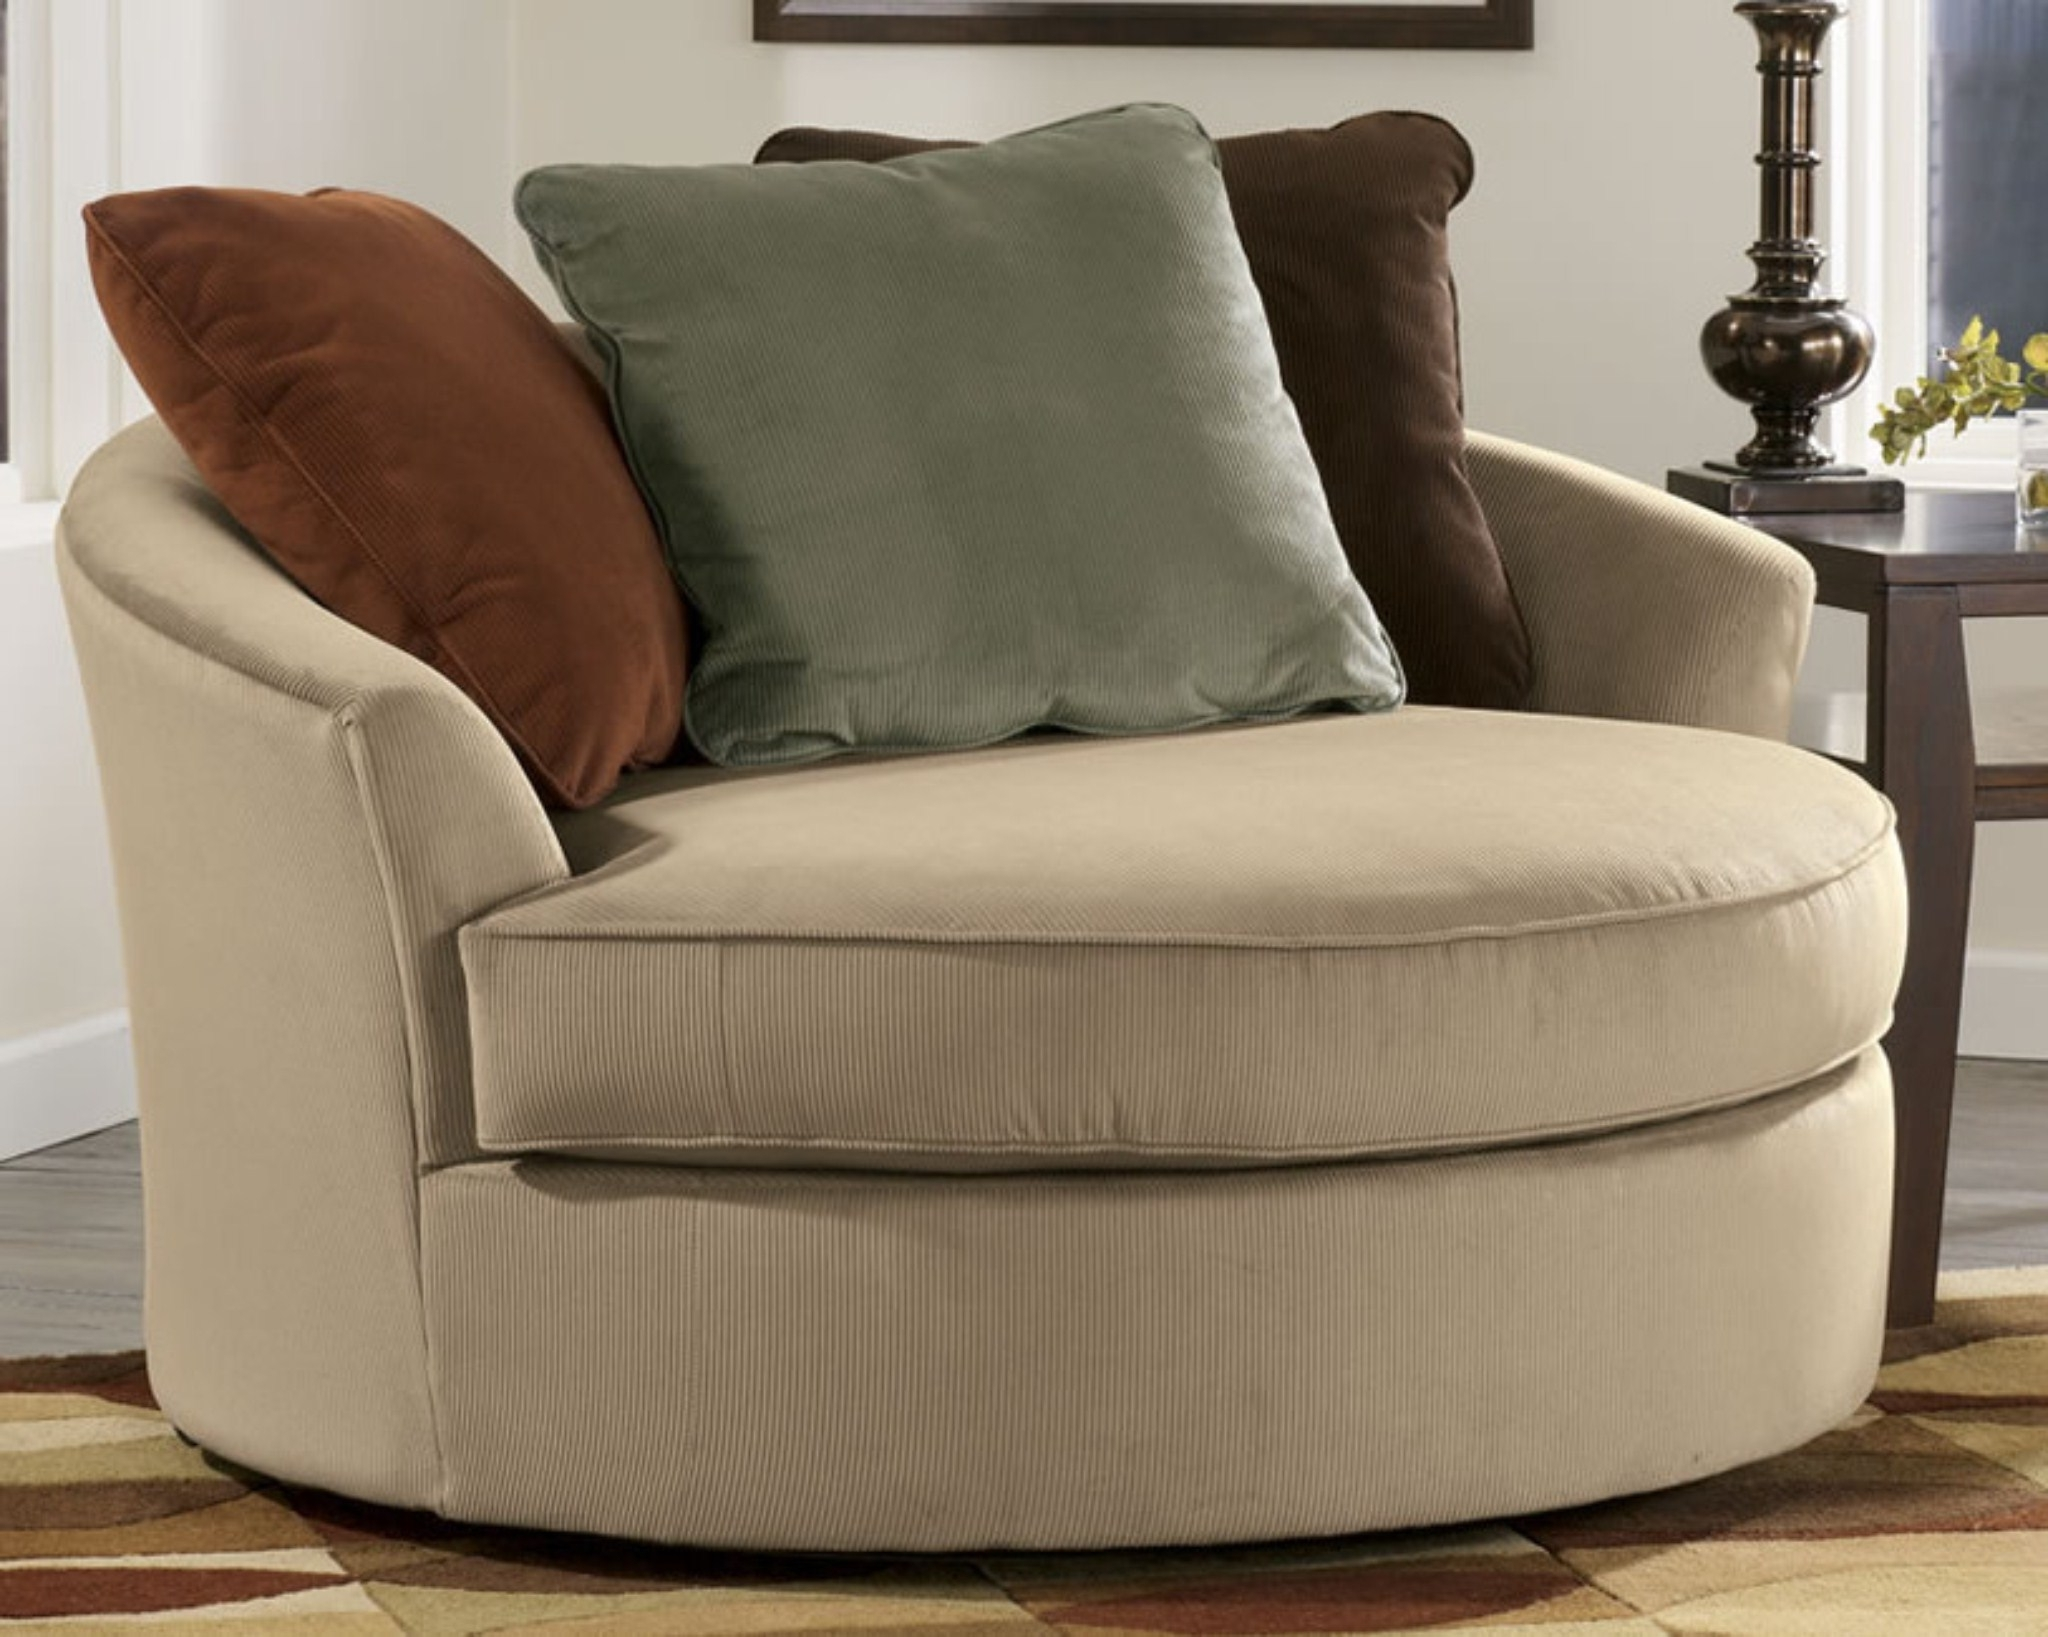 Round Sofa Chair (View 11 of 15)